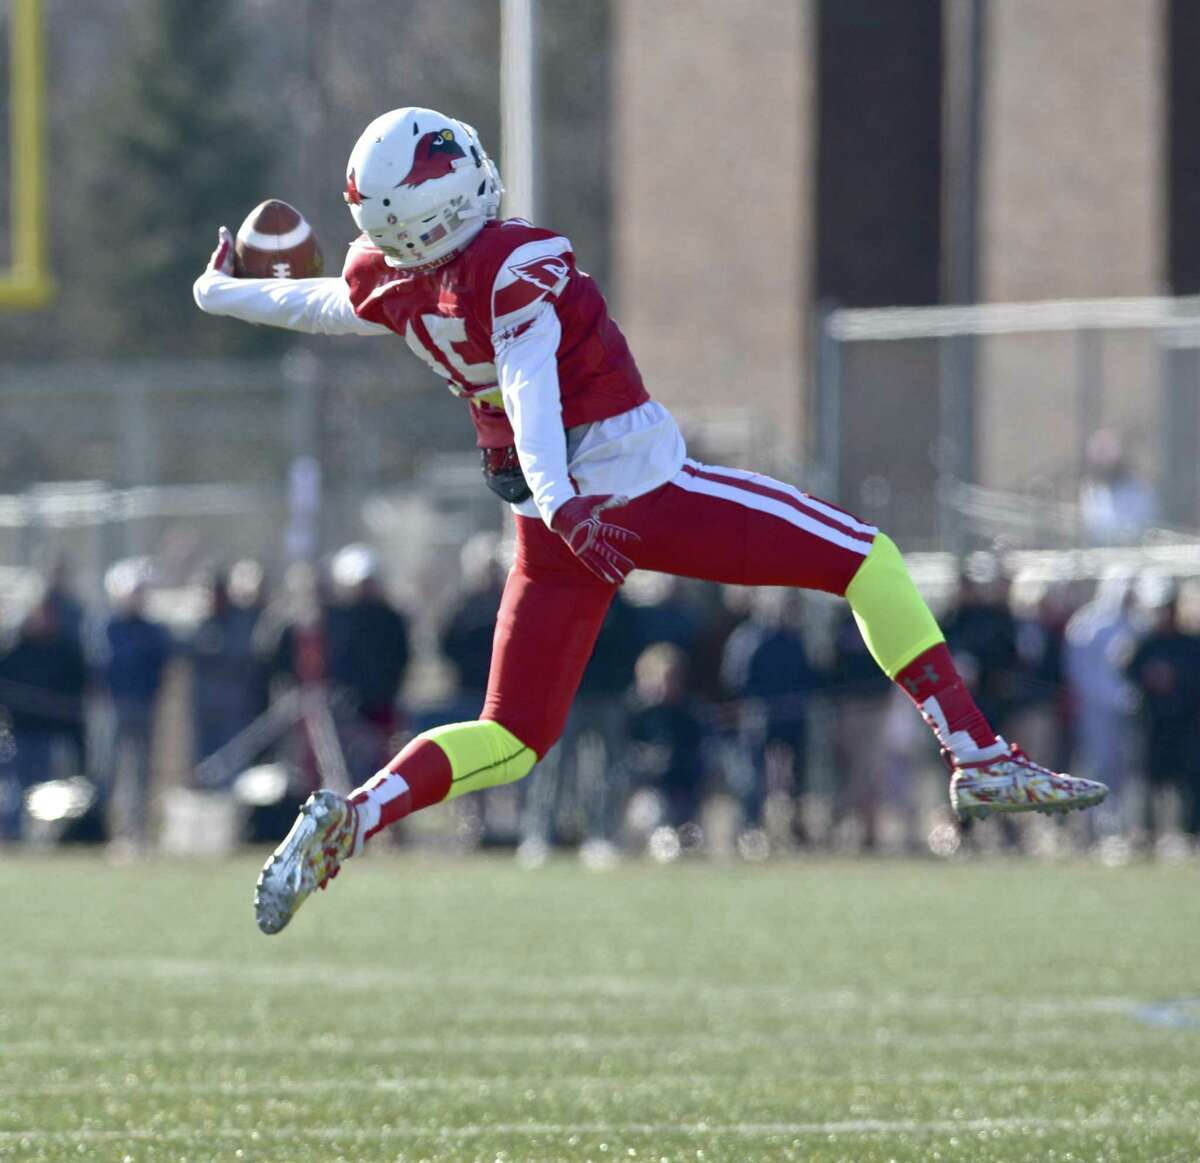 Greenwich's A.J. Barber reaches back to grab the ball during a trick play, after which he threw a touchdown pass, in Saturday's Class LL championship against New Canaan.